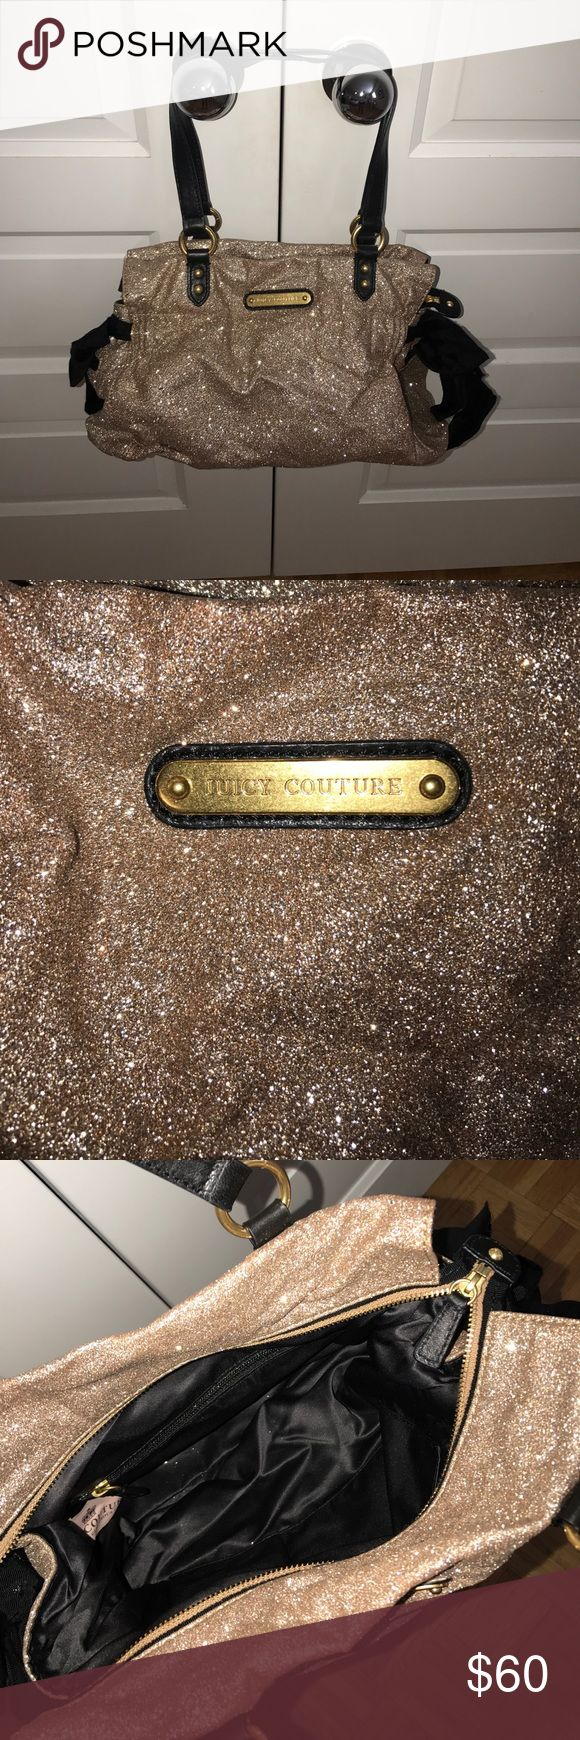 Juicy Couture Purse Gold glitter Juicy Couture purse with black bows on the side. Juicy Couture Bags